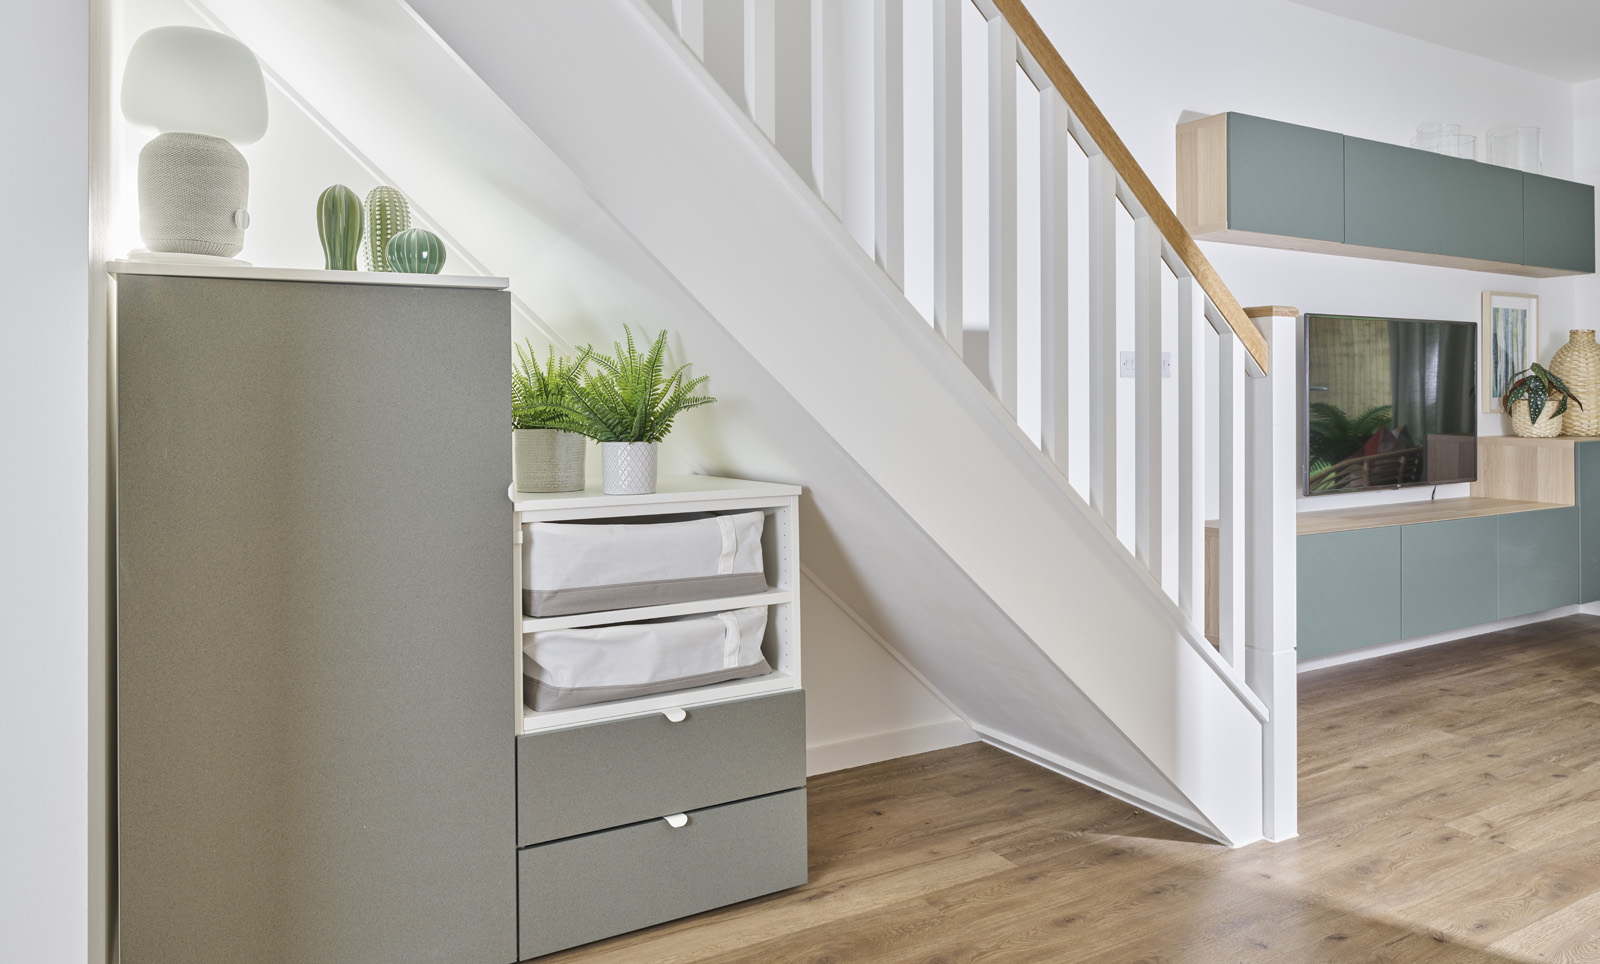 Furnishing interior propposal for staircase at 1st BloKlok UK project